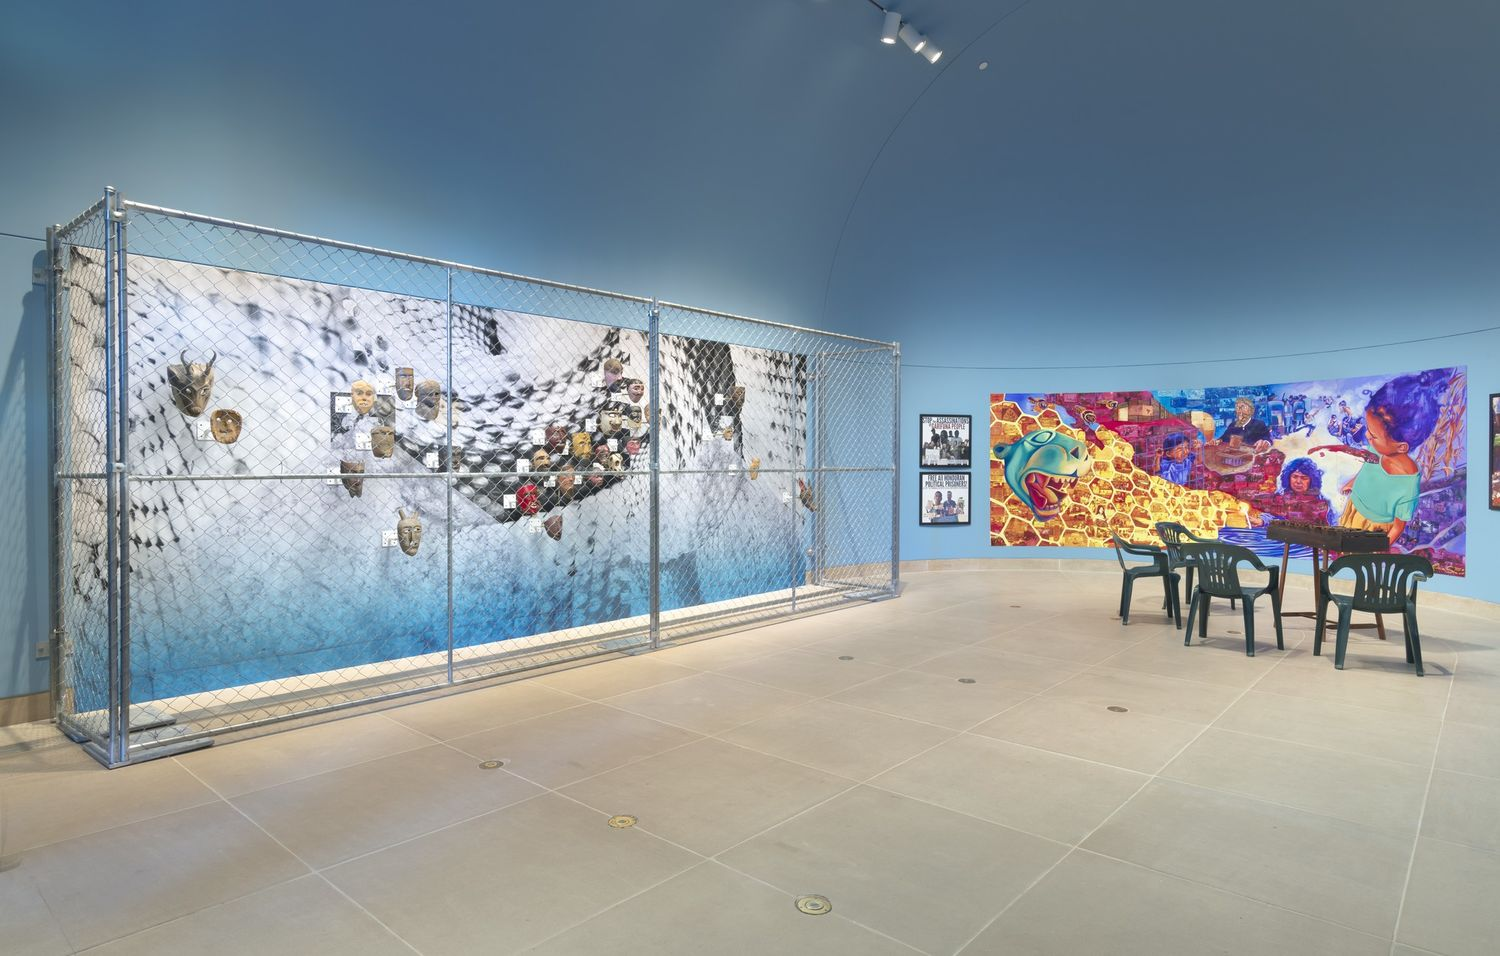 A chainlink fence around a display of masks, with a colorful mural hung on the wall next to them and green chairs on the gallery floor